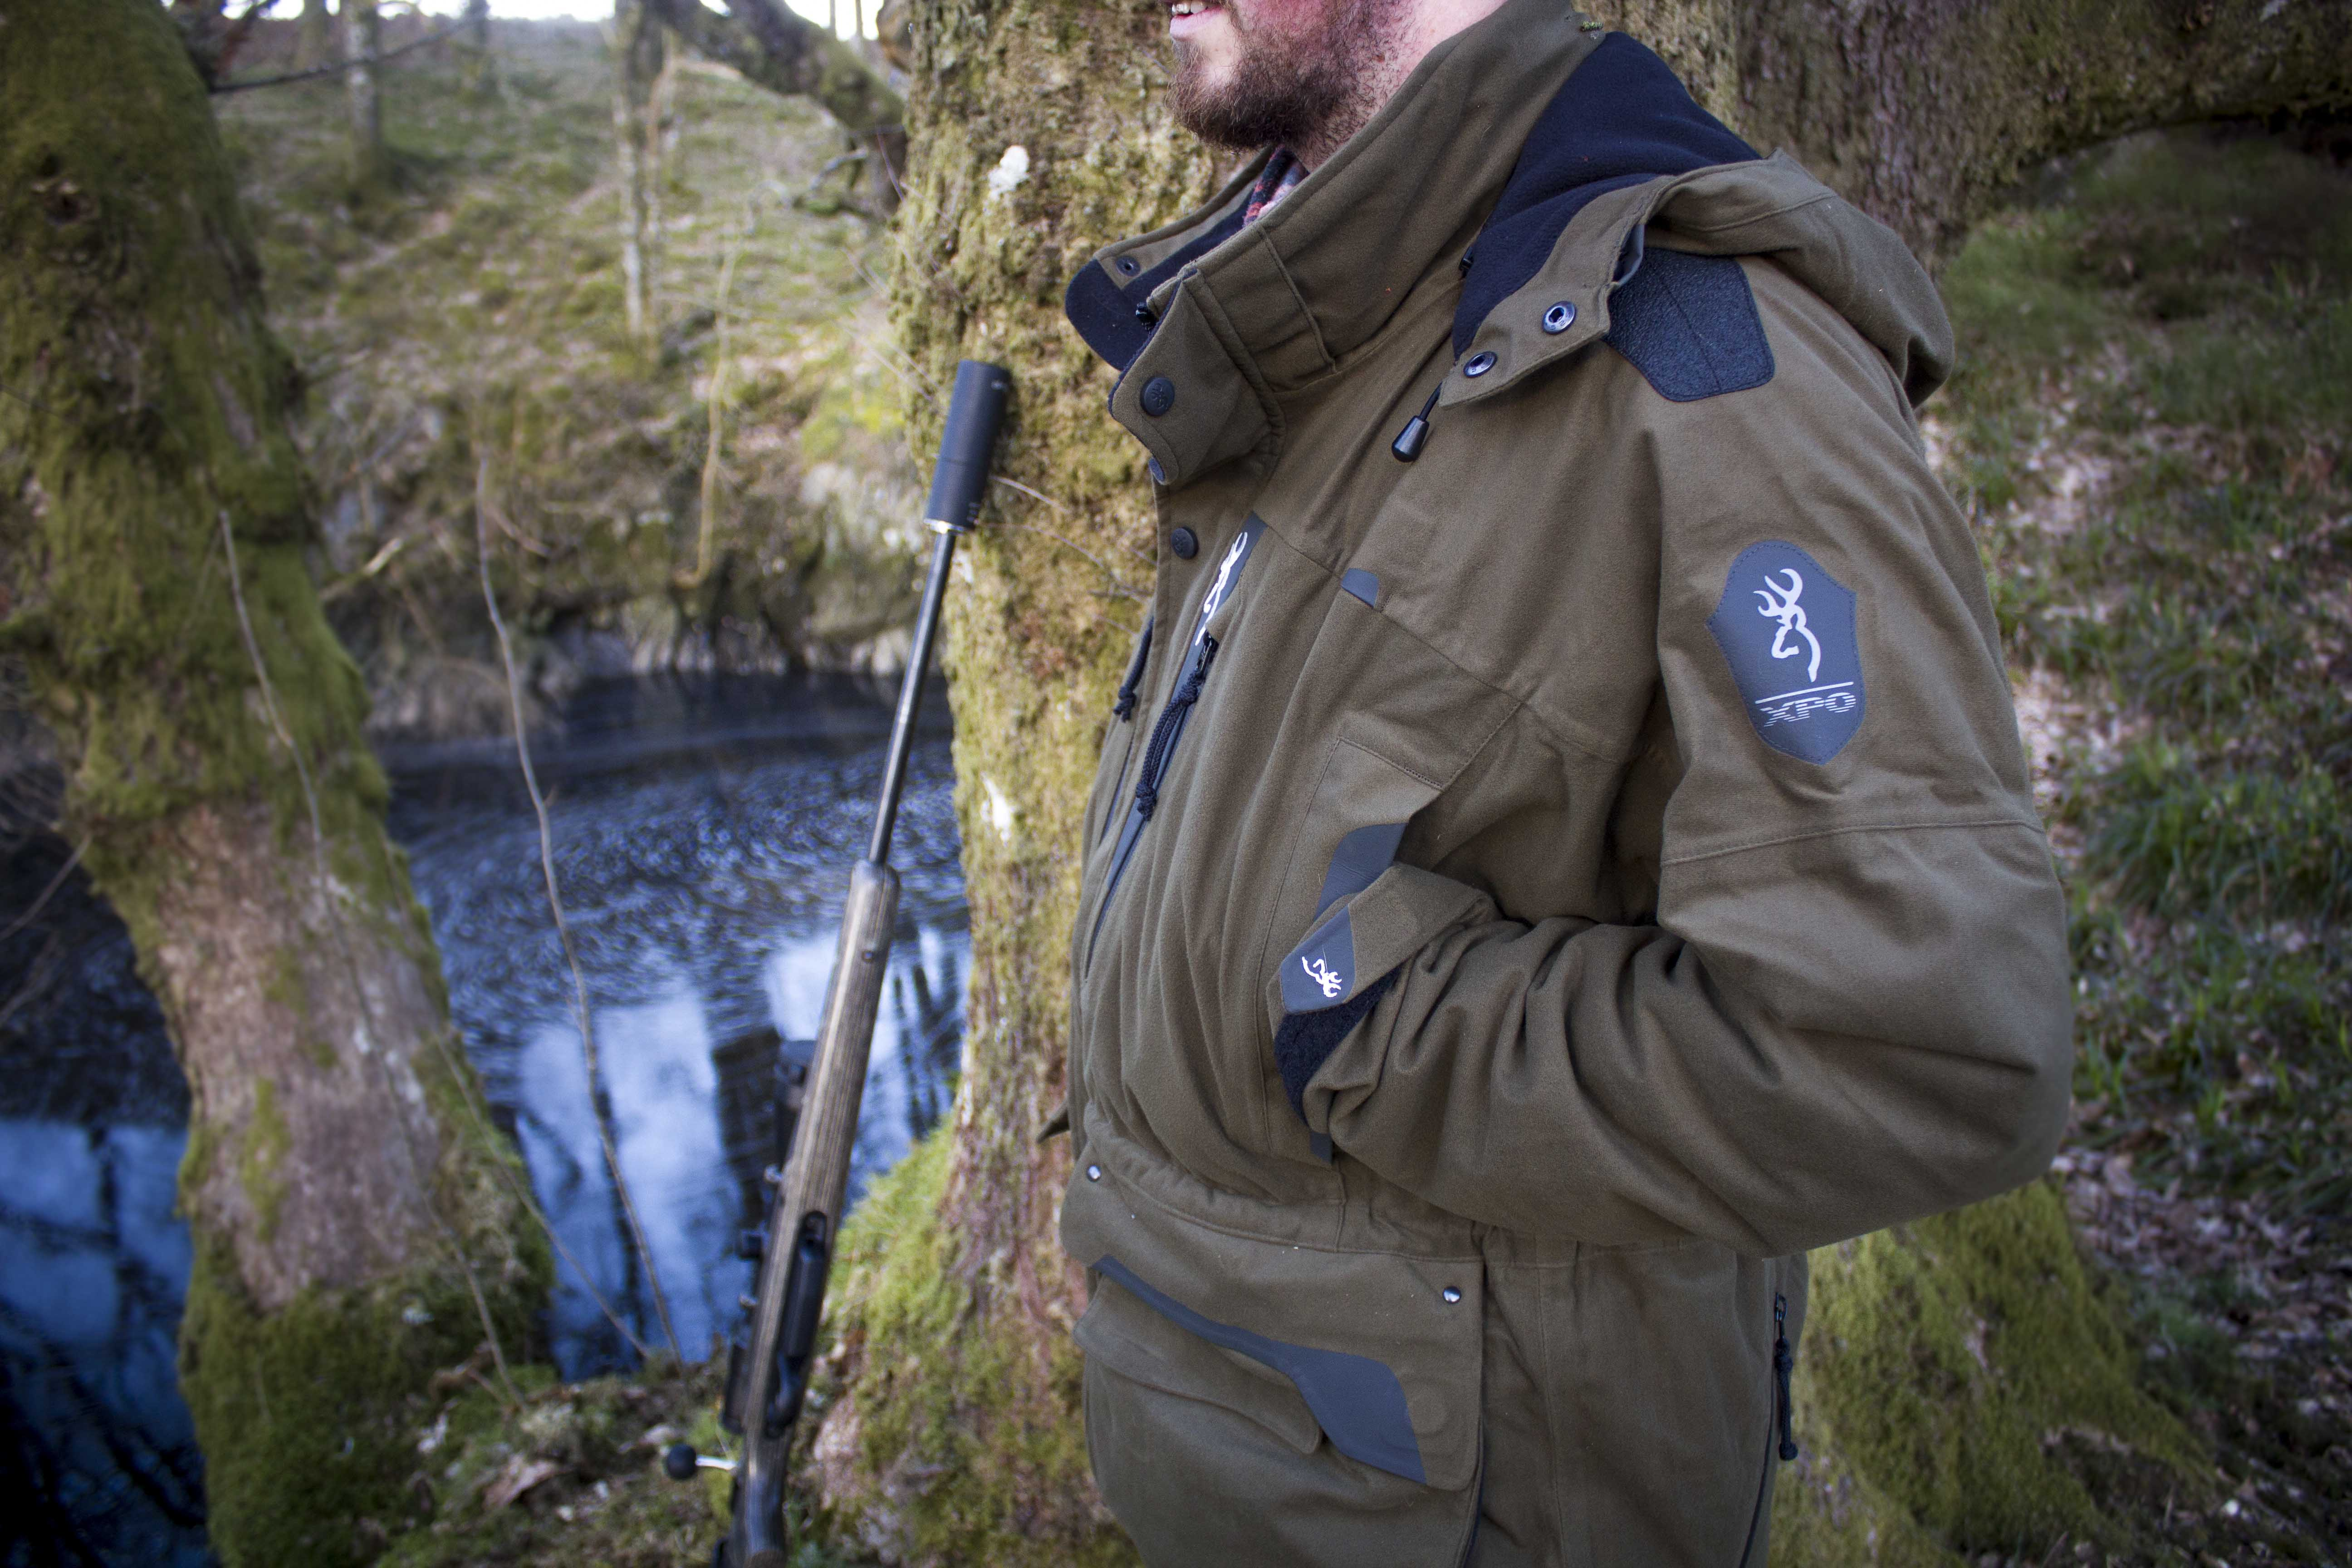 33b210d6684ea The XPO Pro gets the Scottish seal of approval! - Browning Blog